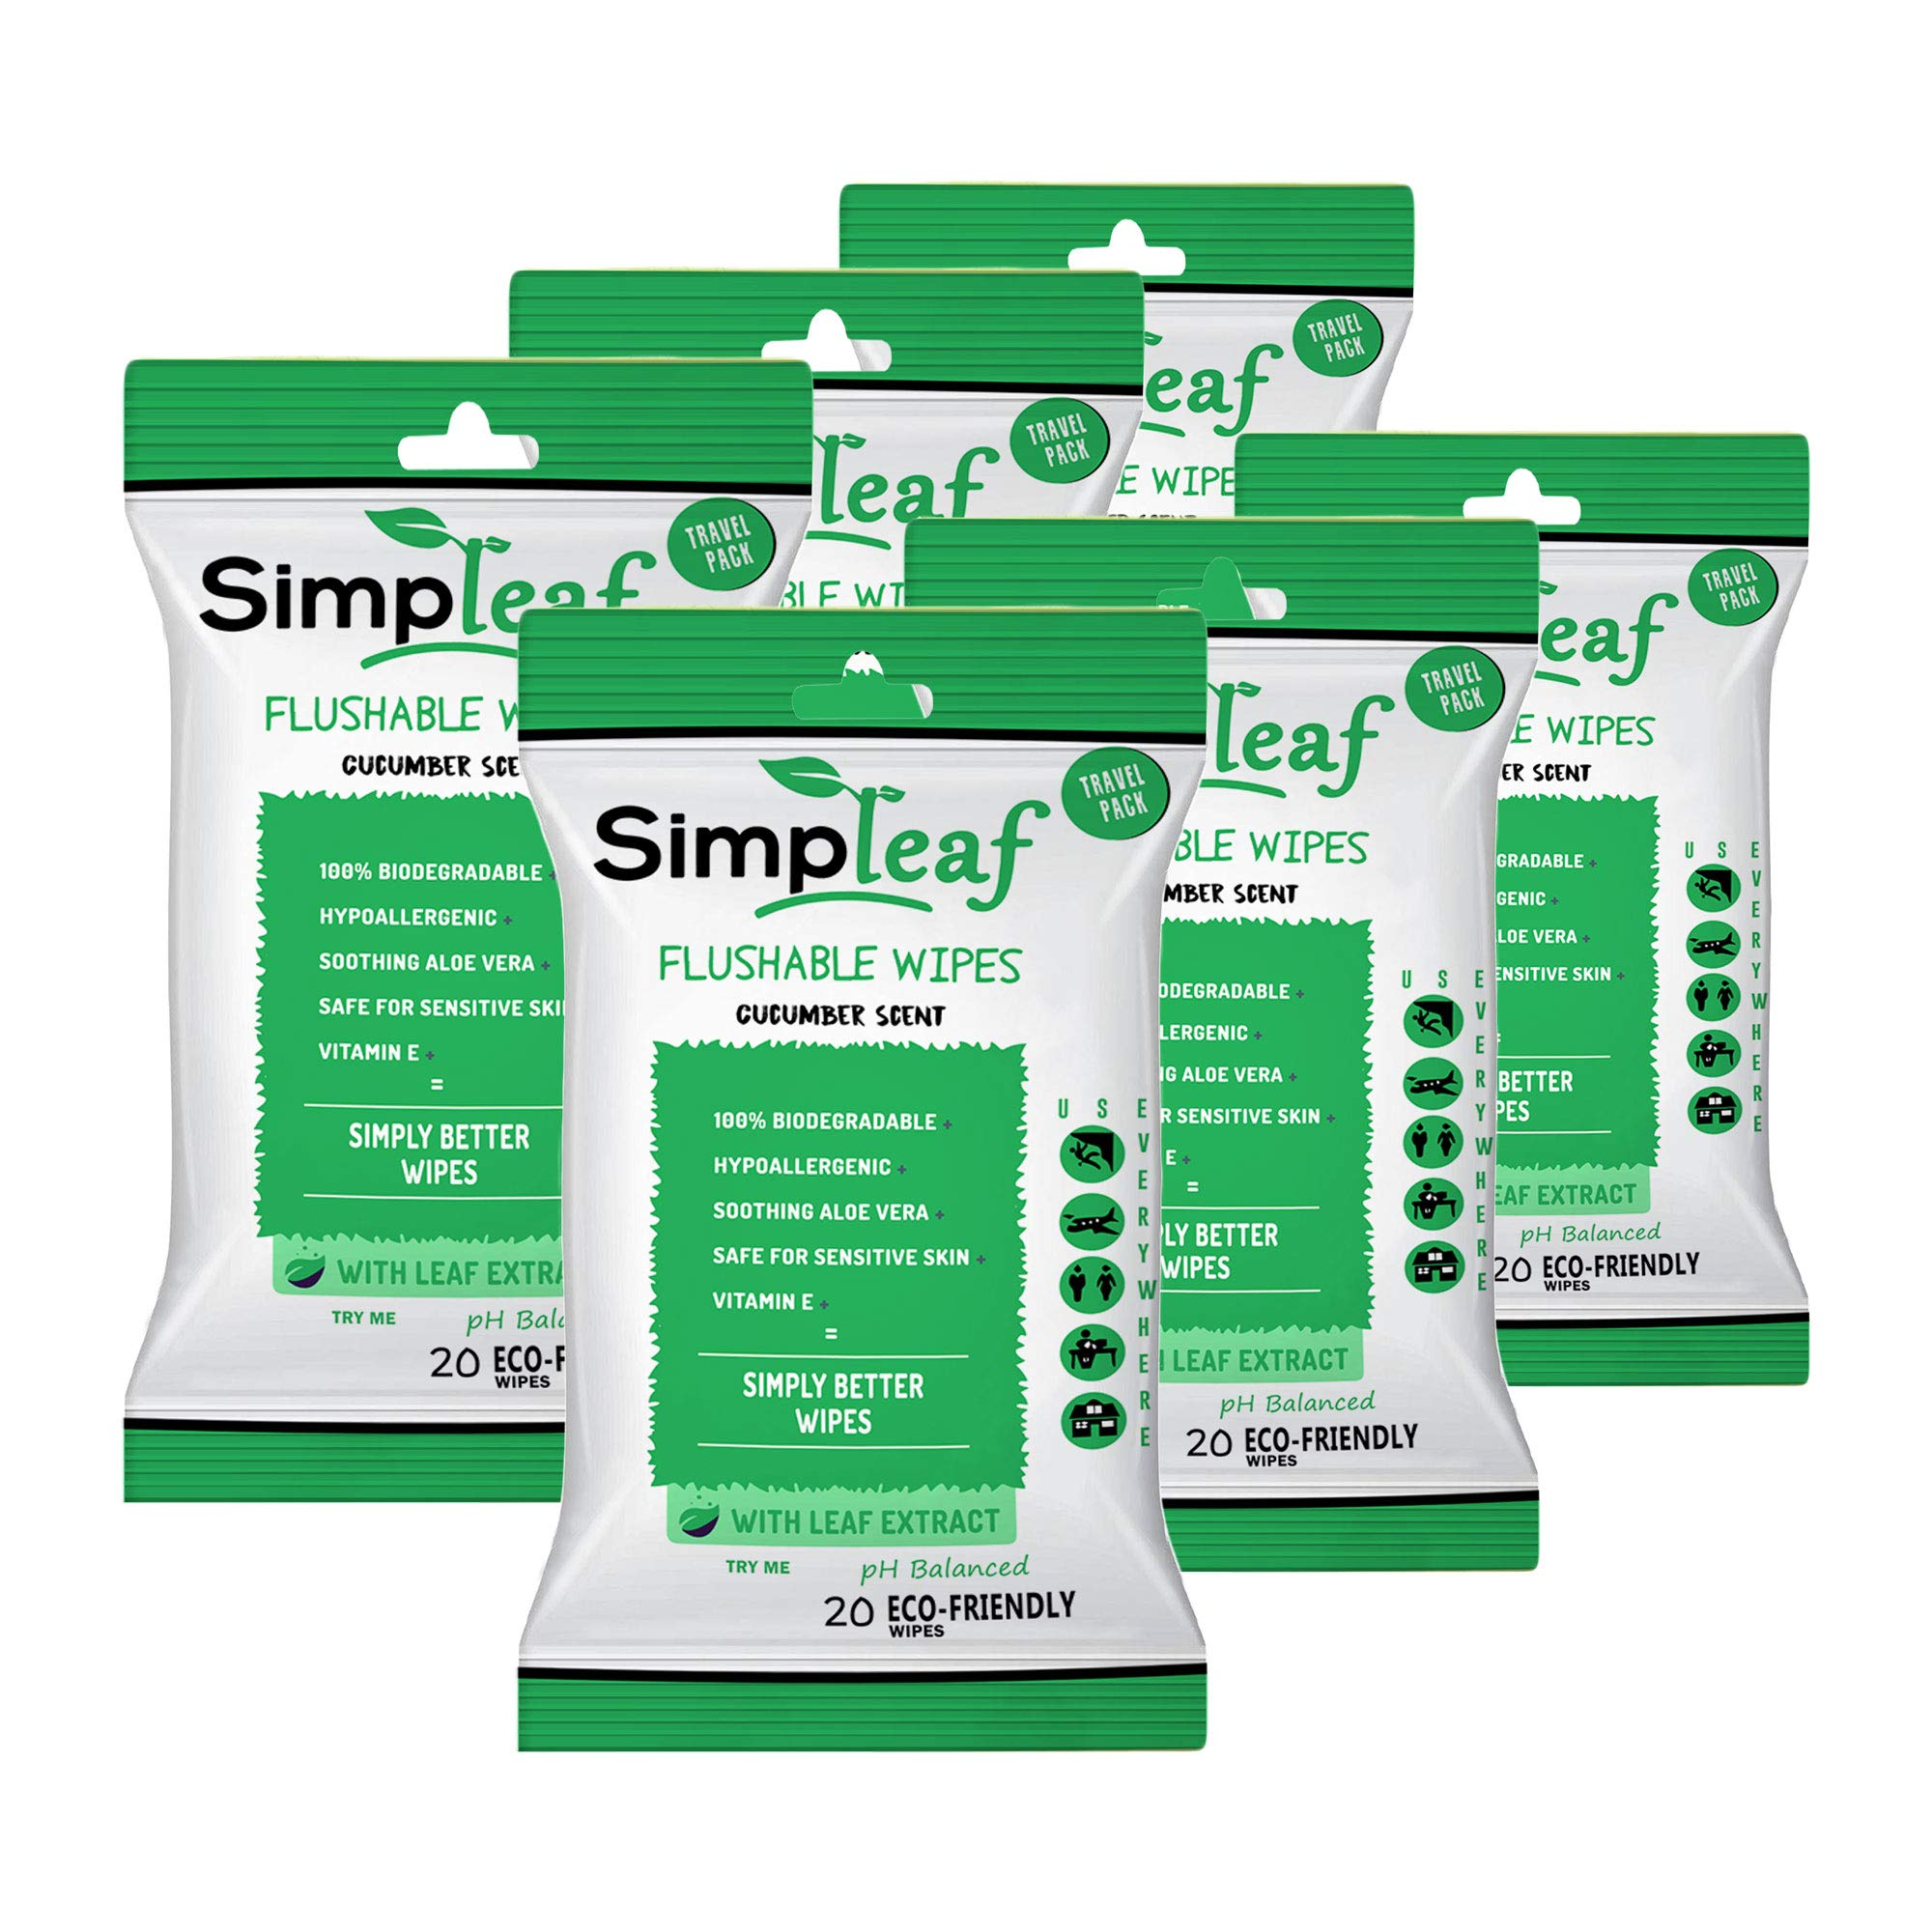 Simpleaf Flushable Wipes: Eco- Friendly, Thick and Effective, Paraben and Alcohol Free, Hypoallergenic and Safe for Sensitive Skin, Vitamin E with Cucumber Scent (6 Packs) by Simpleaf